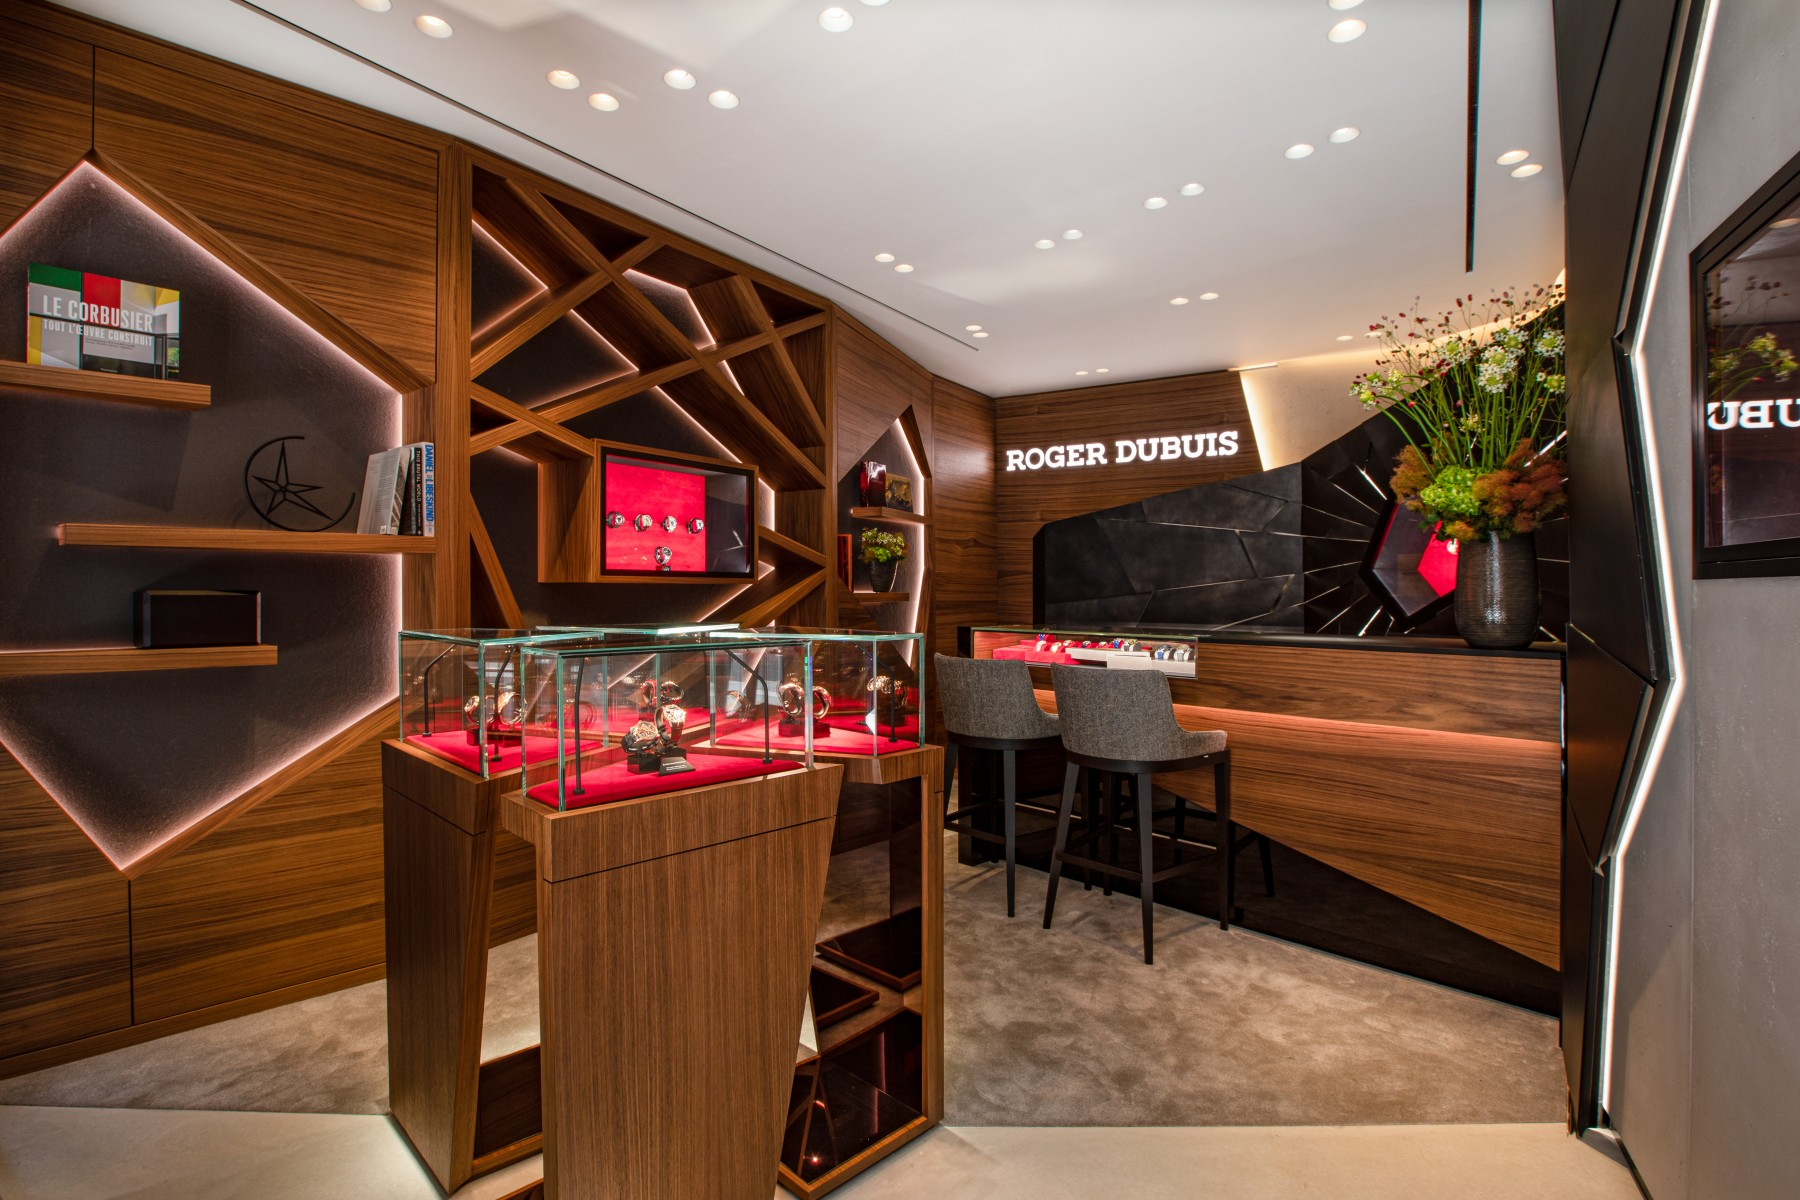 Roger Dubuis 's Bond Street Boutique